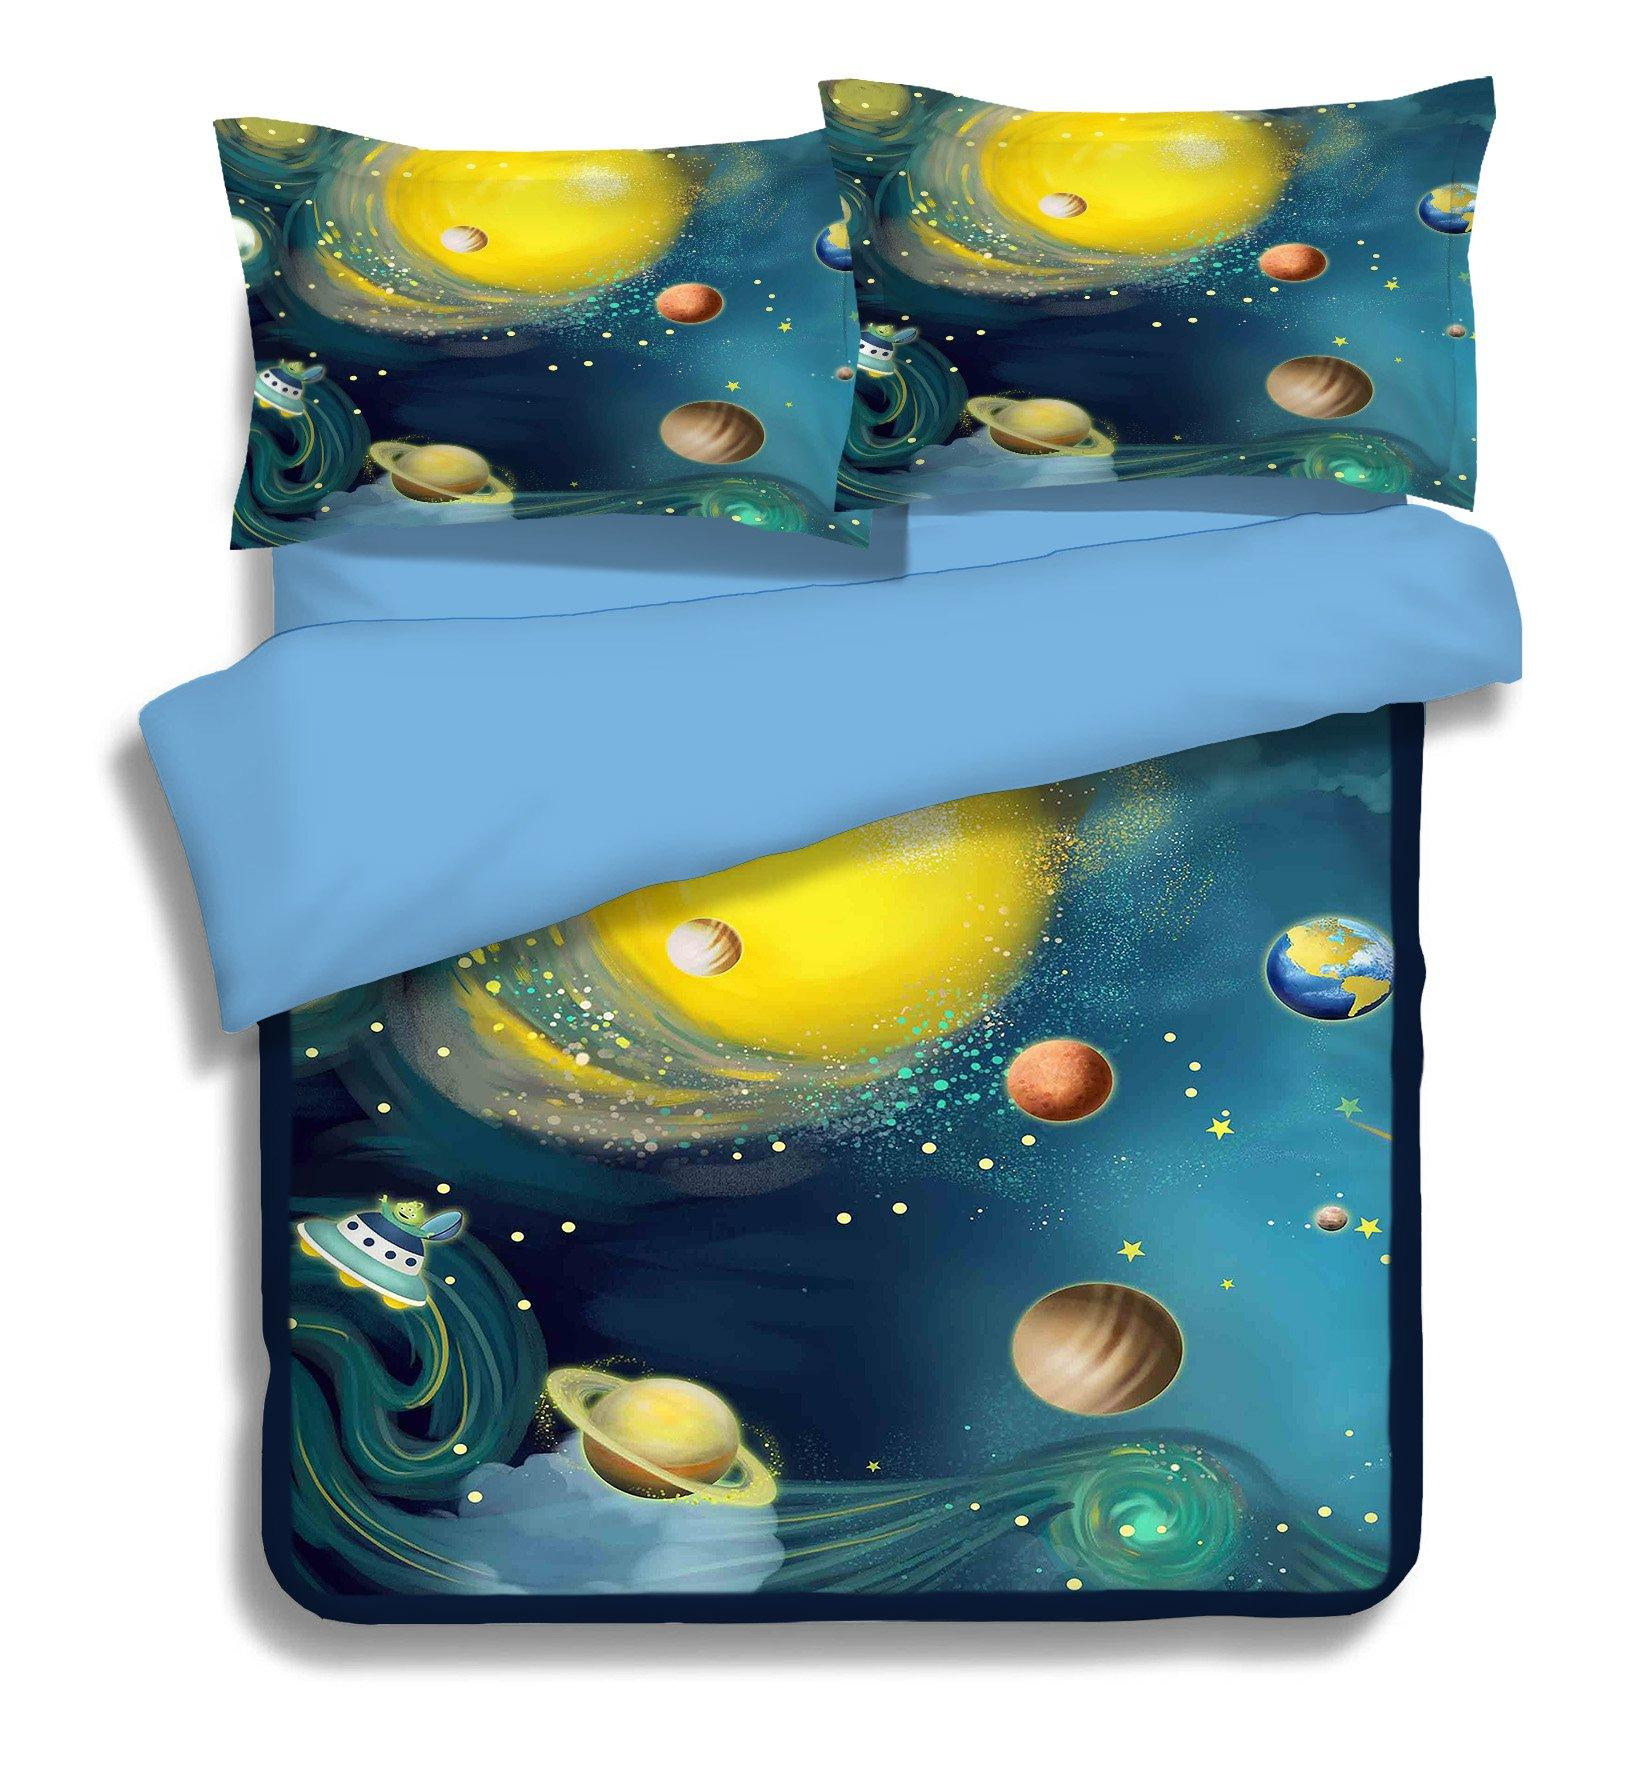 3D Spacecraft Planet 139 Bed Pillowcases Quilt Wallpaper AJ Wallpaper